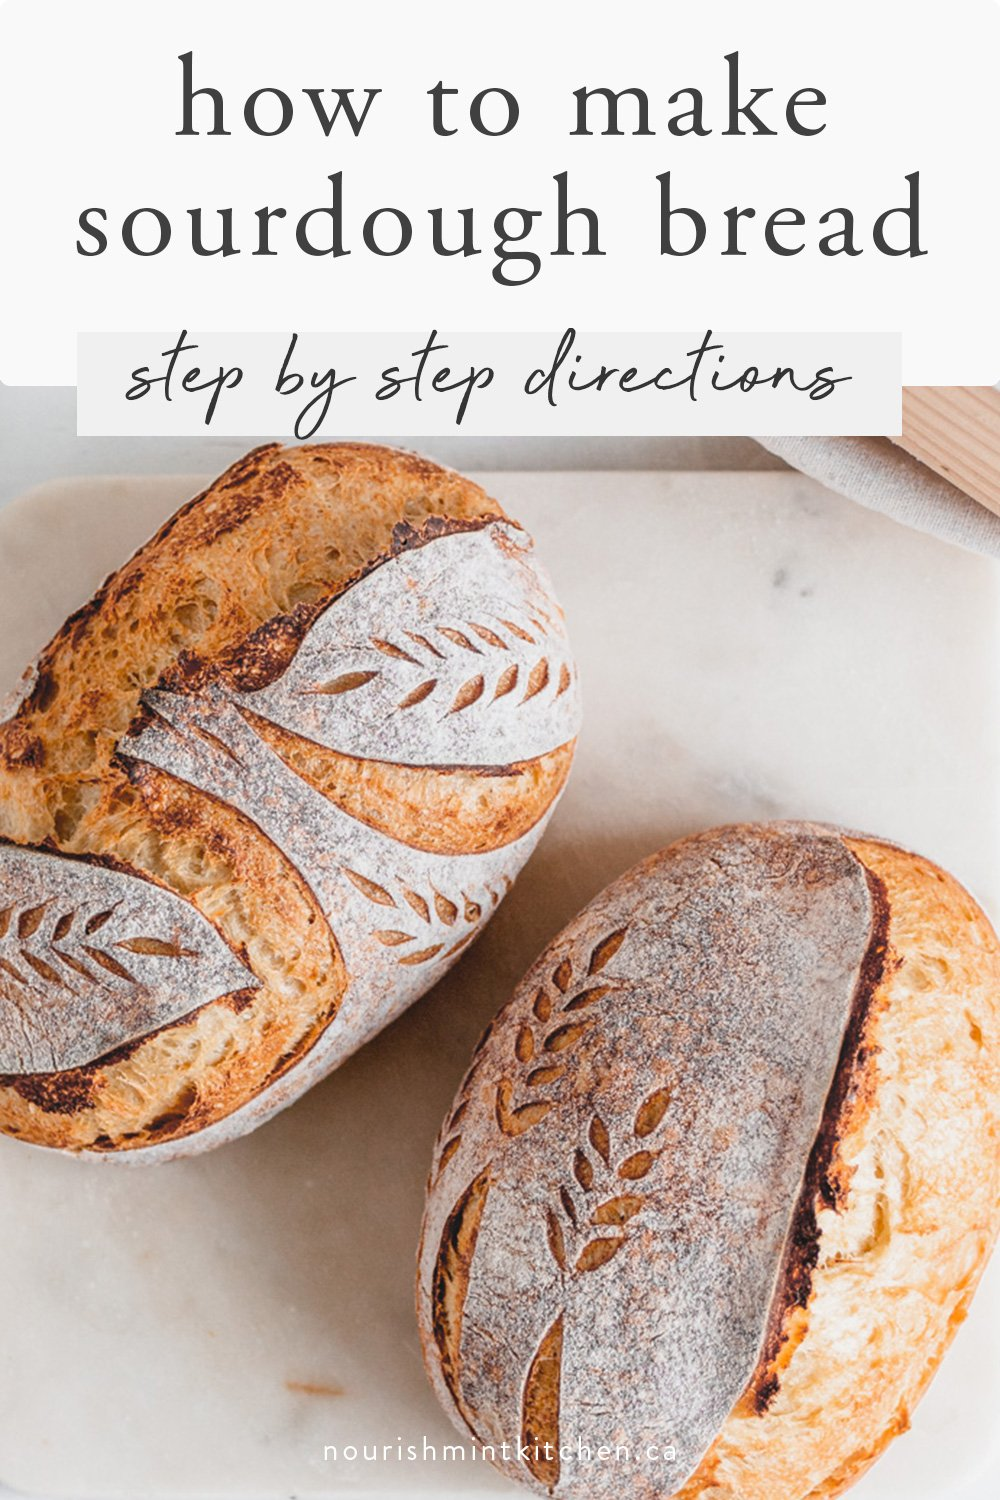 graphic with image and text: how to make sourdough bread